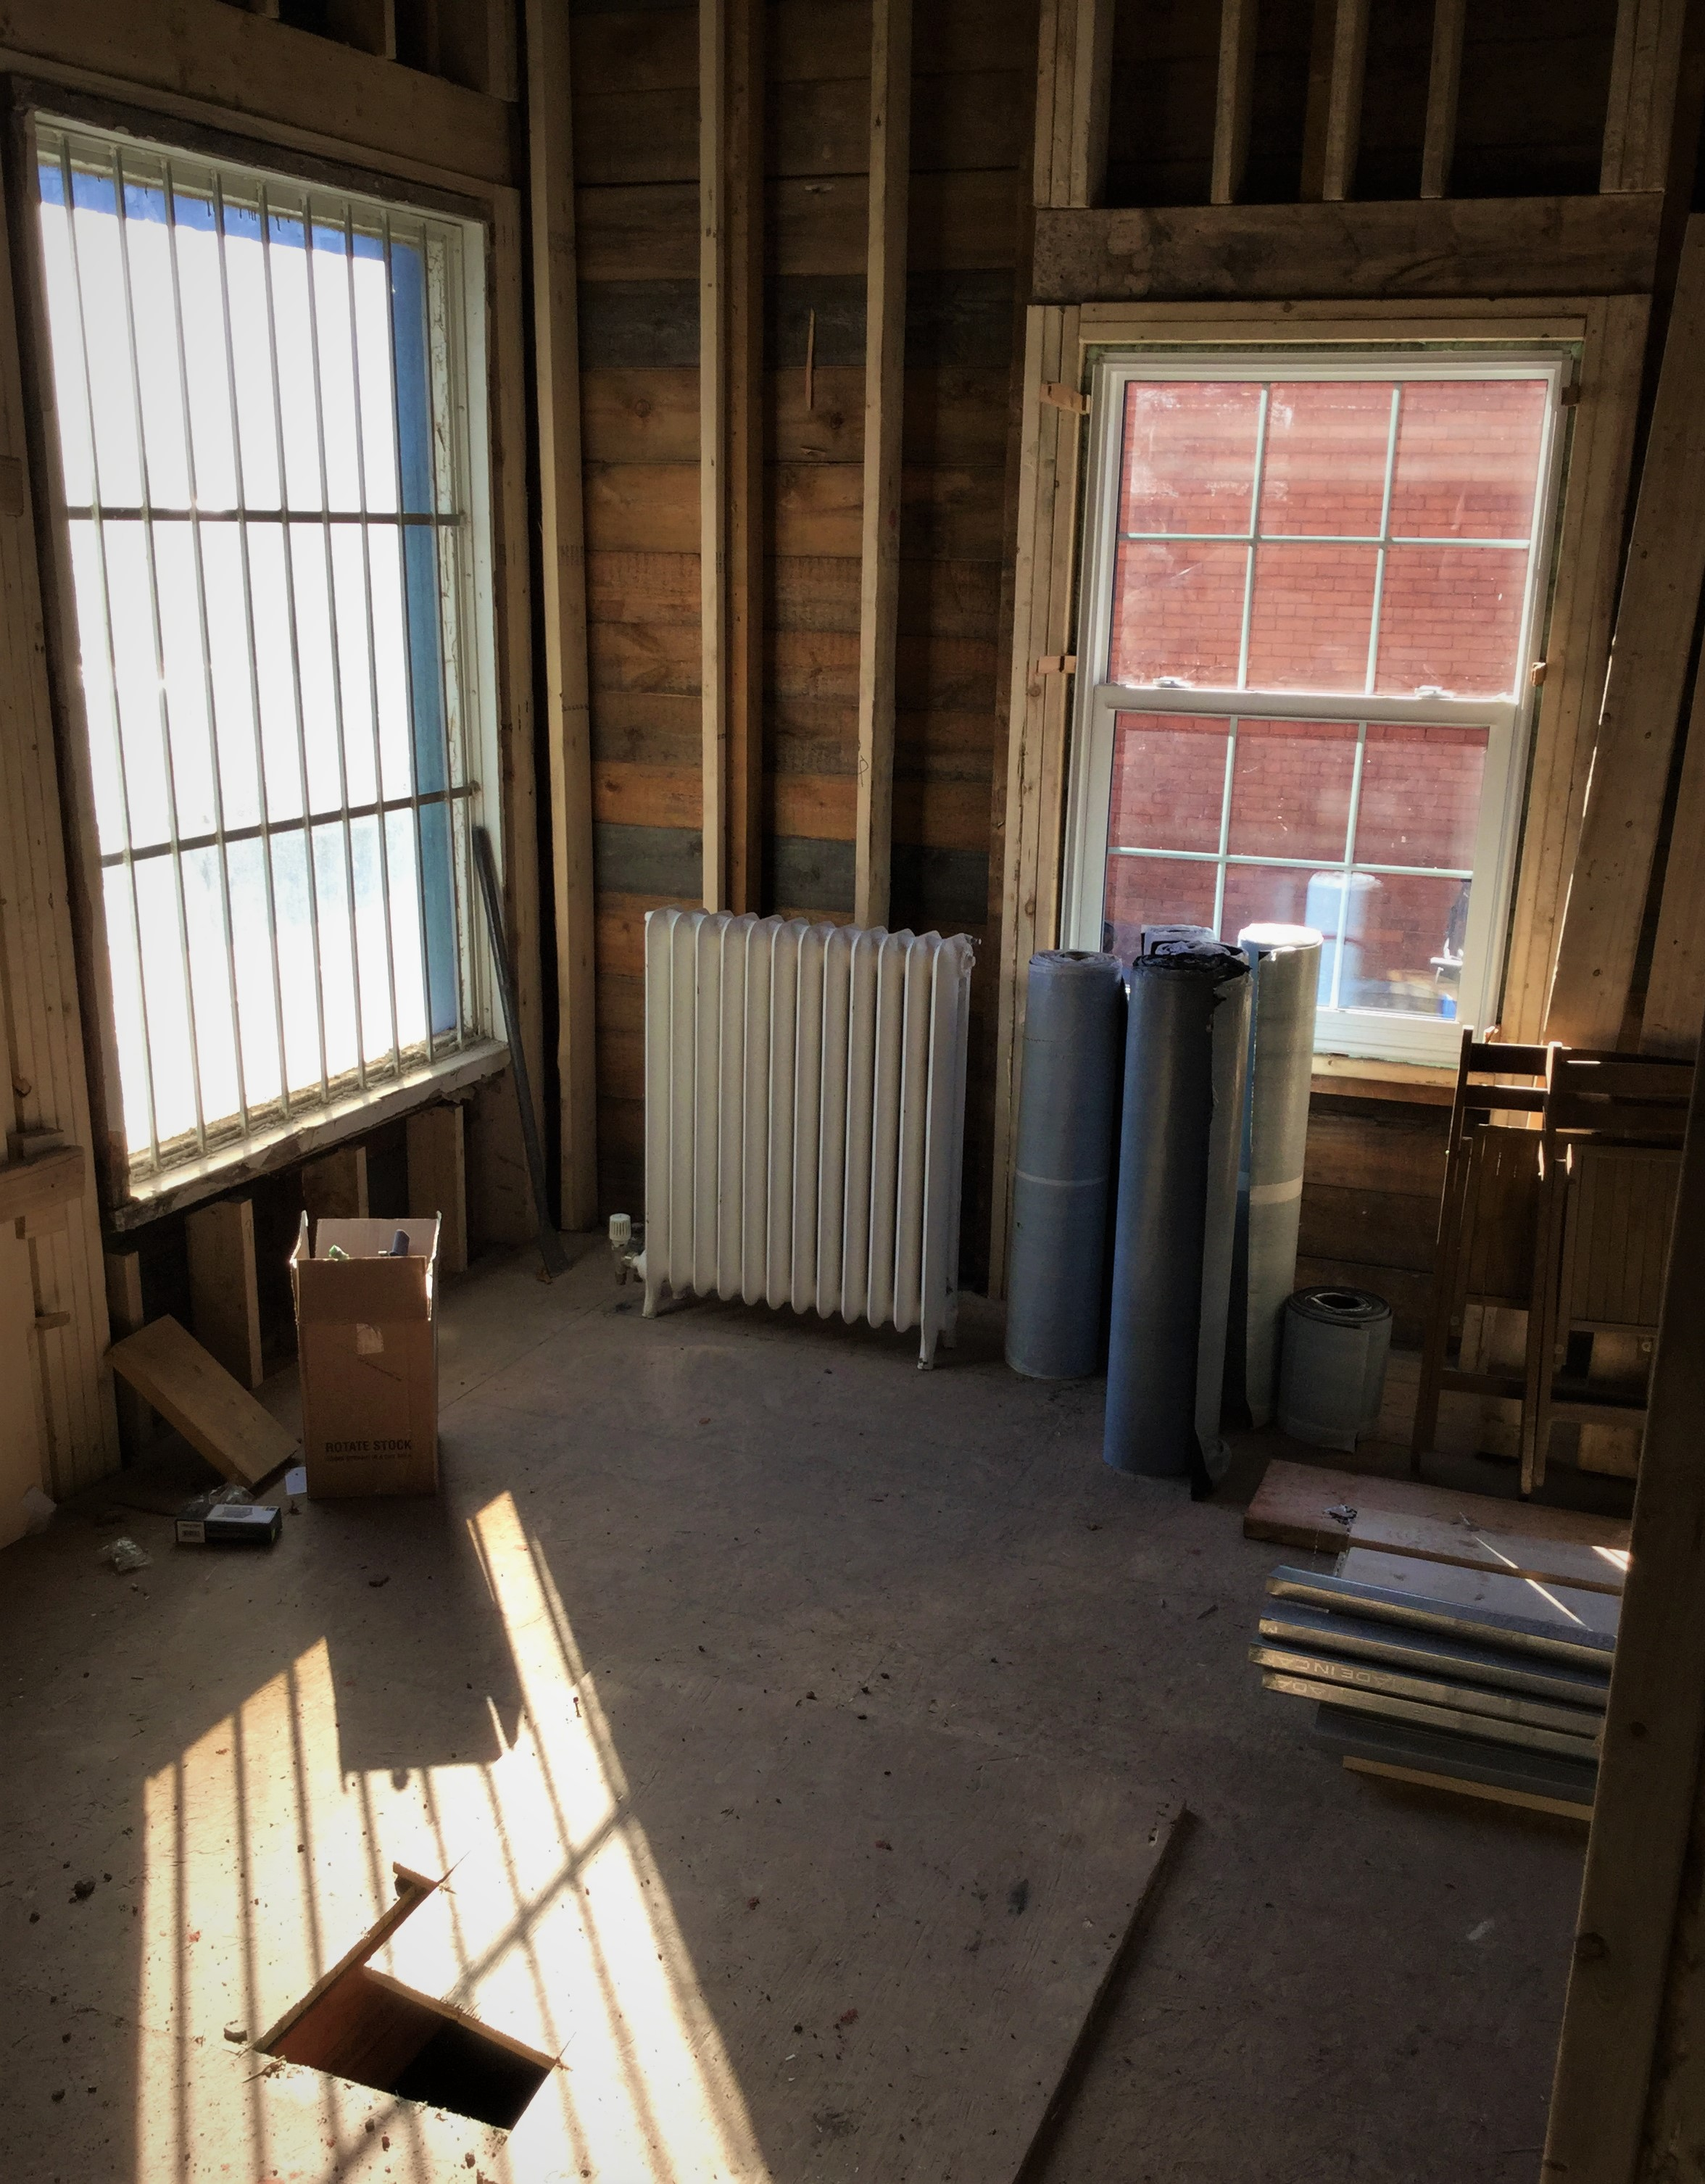 First look inside. The Heritage building is being restored and construction is ongoing.